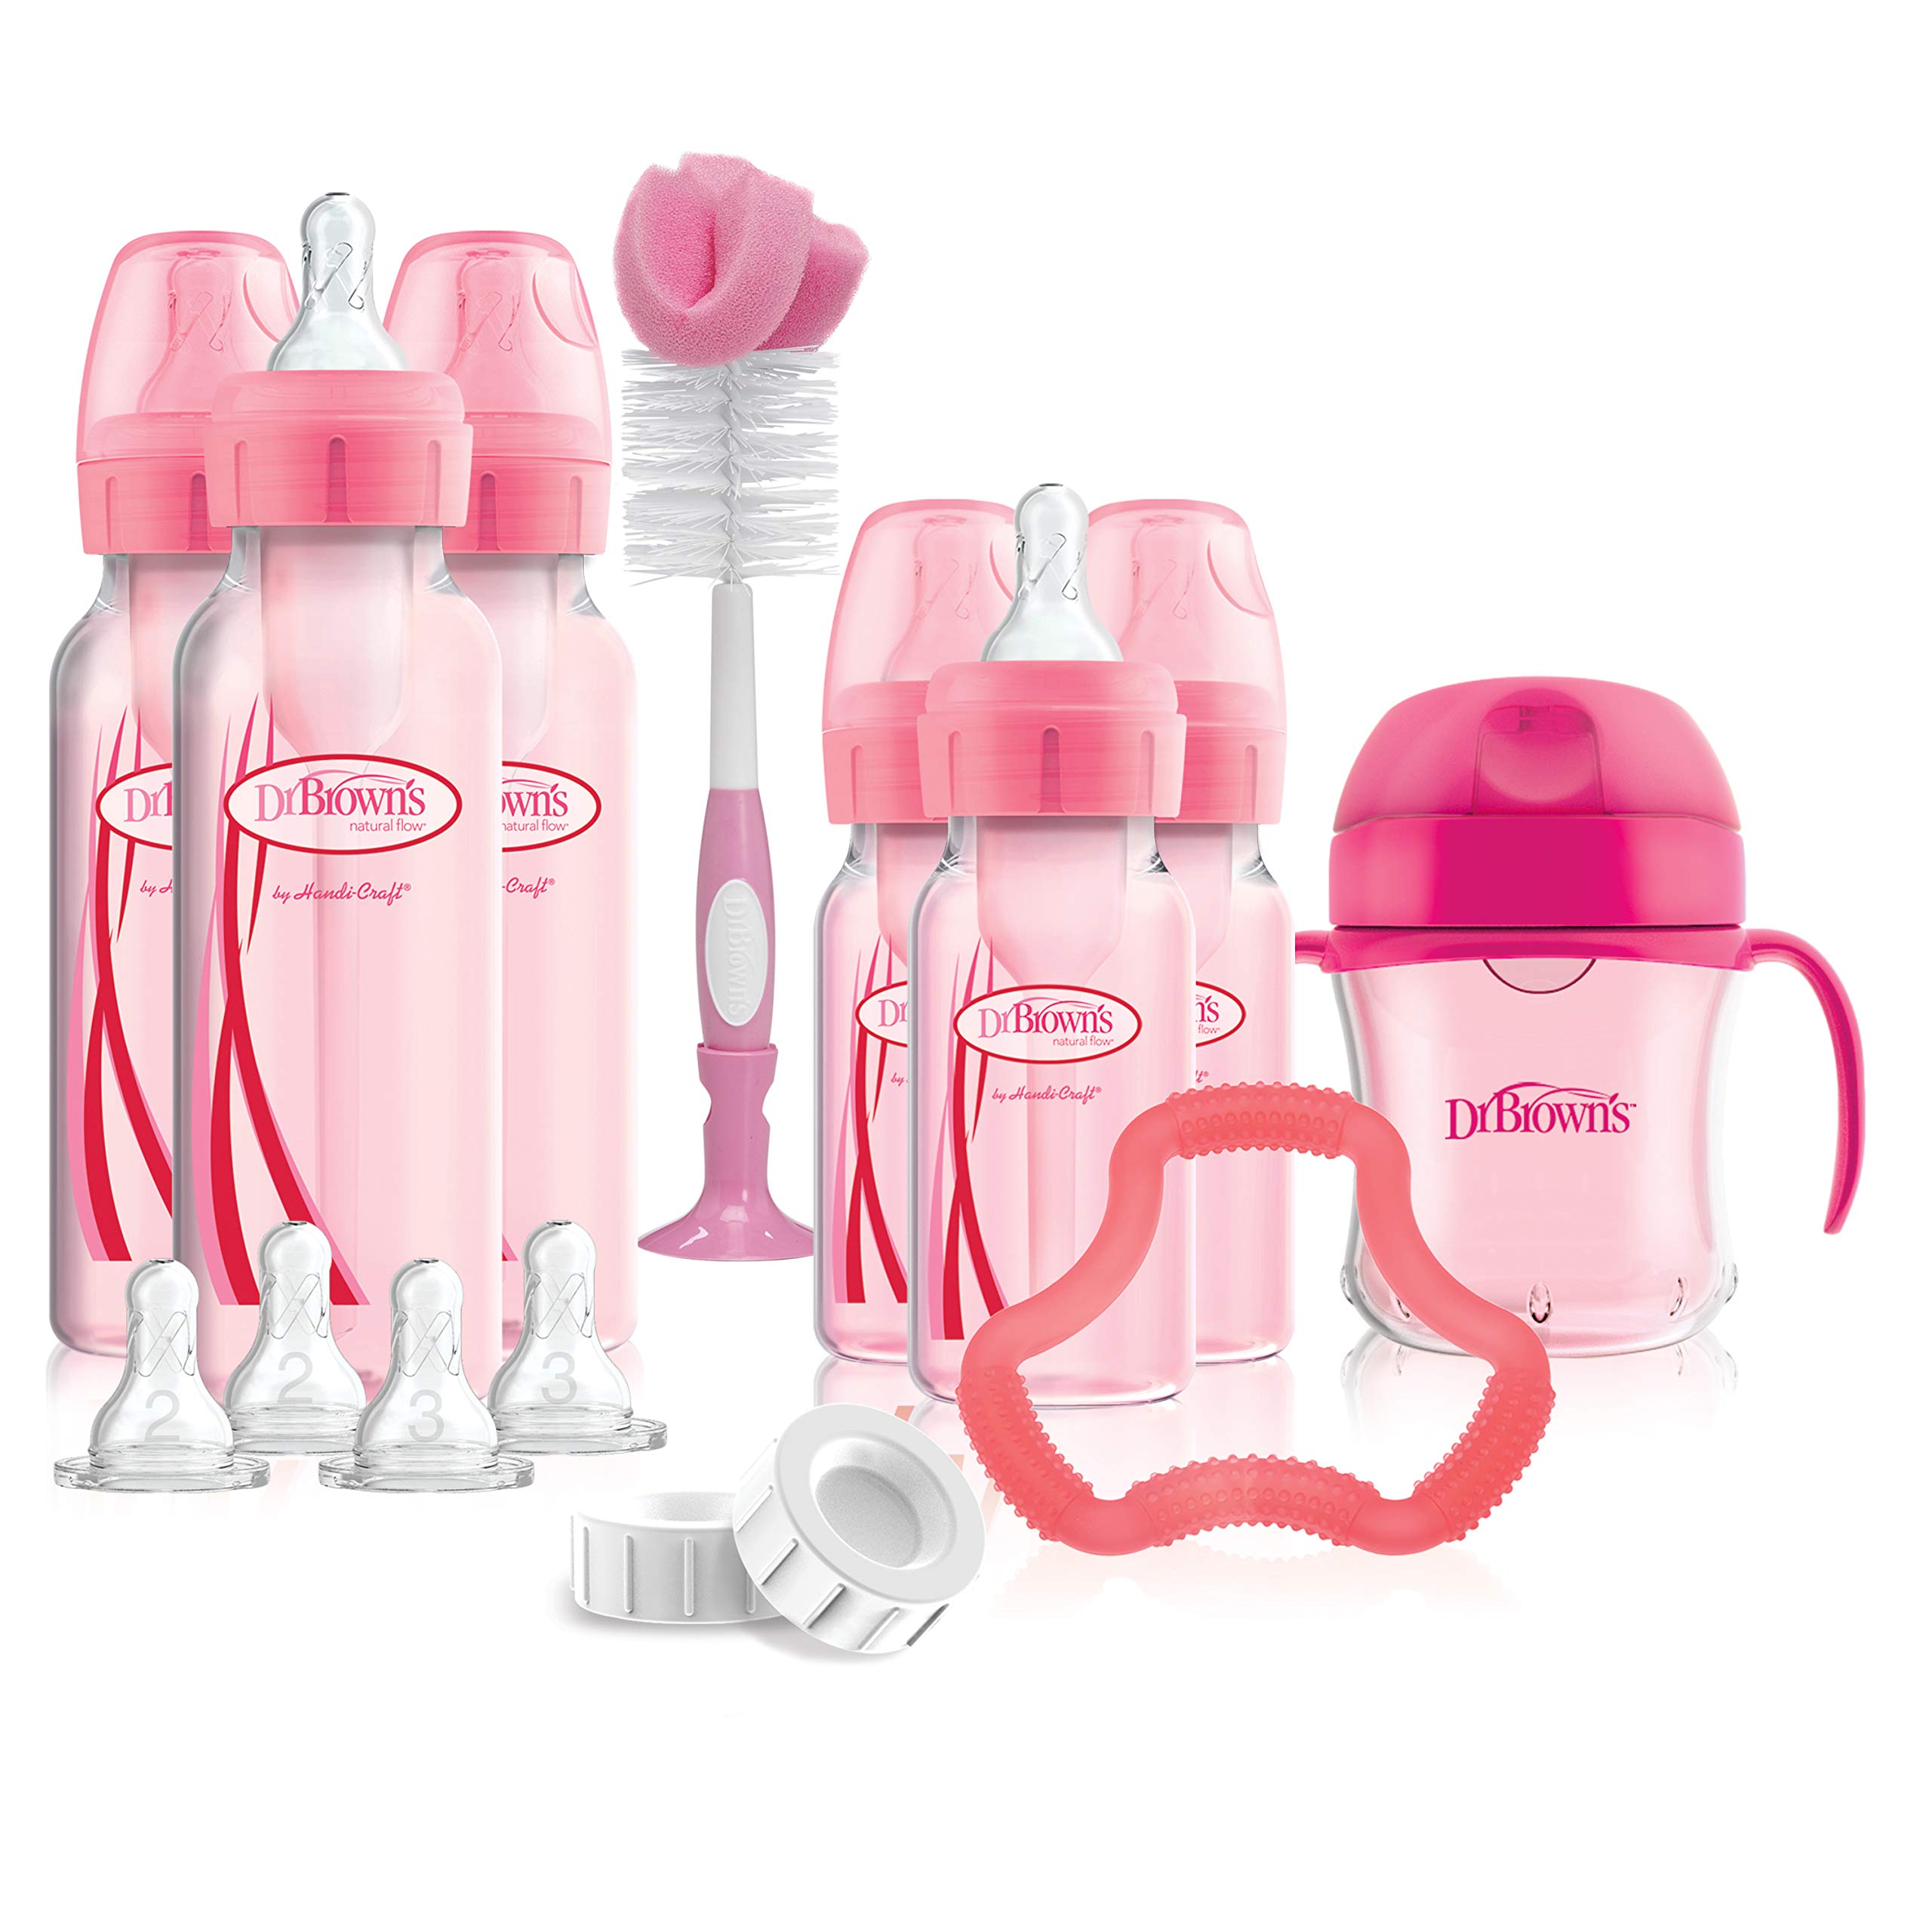 Dr. Brown's Options+ Baby Bottles Pink Gift Set with Silicone Teether, Pink Sippy Cup, Pink Bottle Brush and Travel Caps, Includes 6 Narrow Pink Baby Bottles by Dr. Brown's